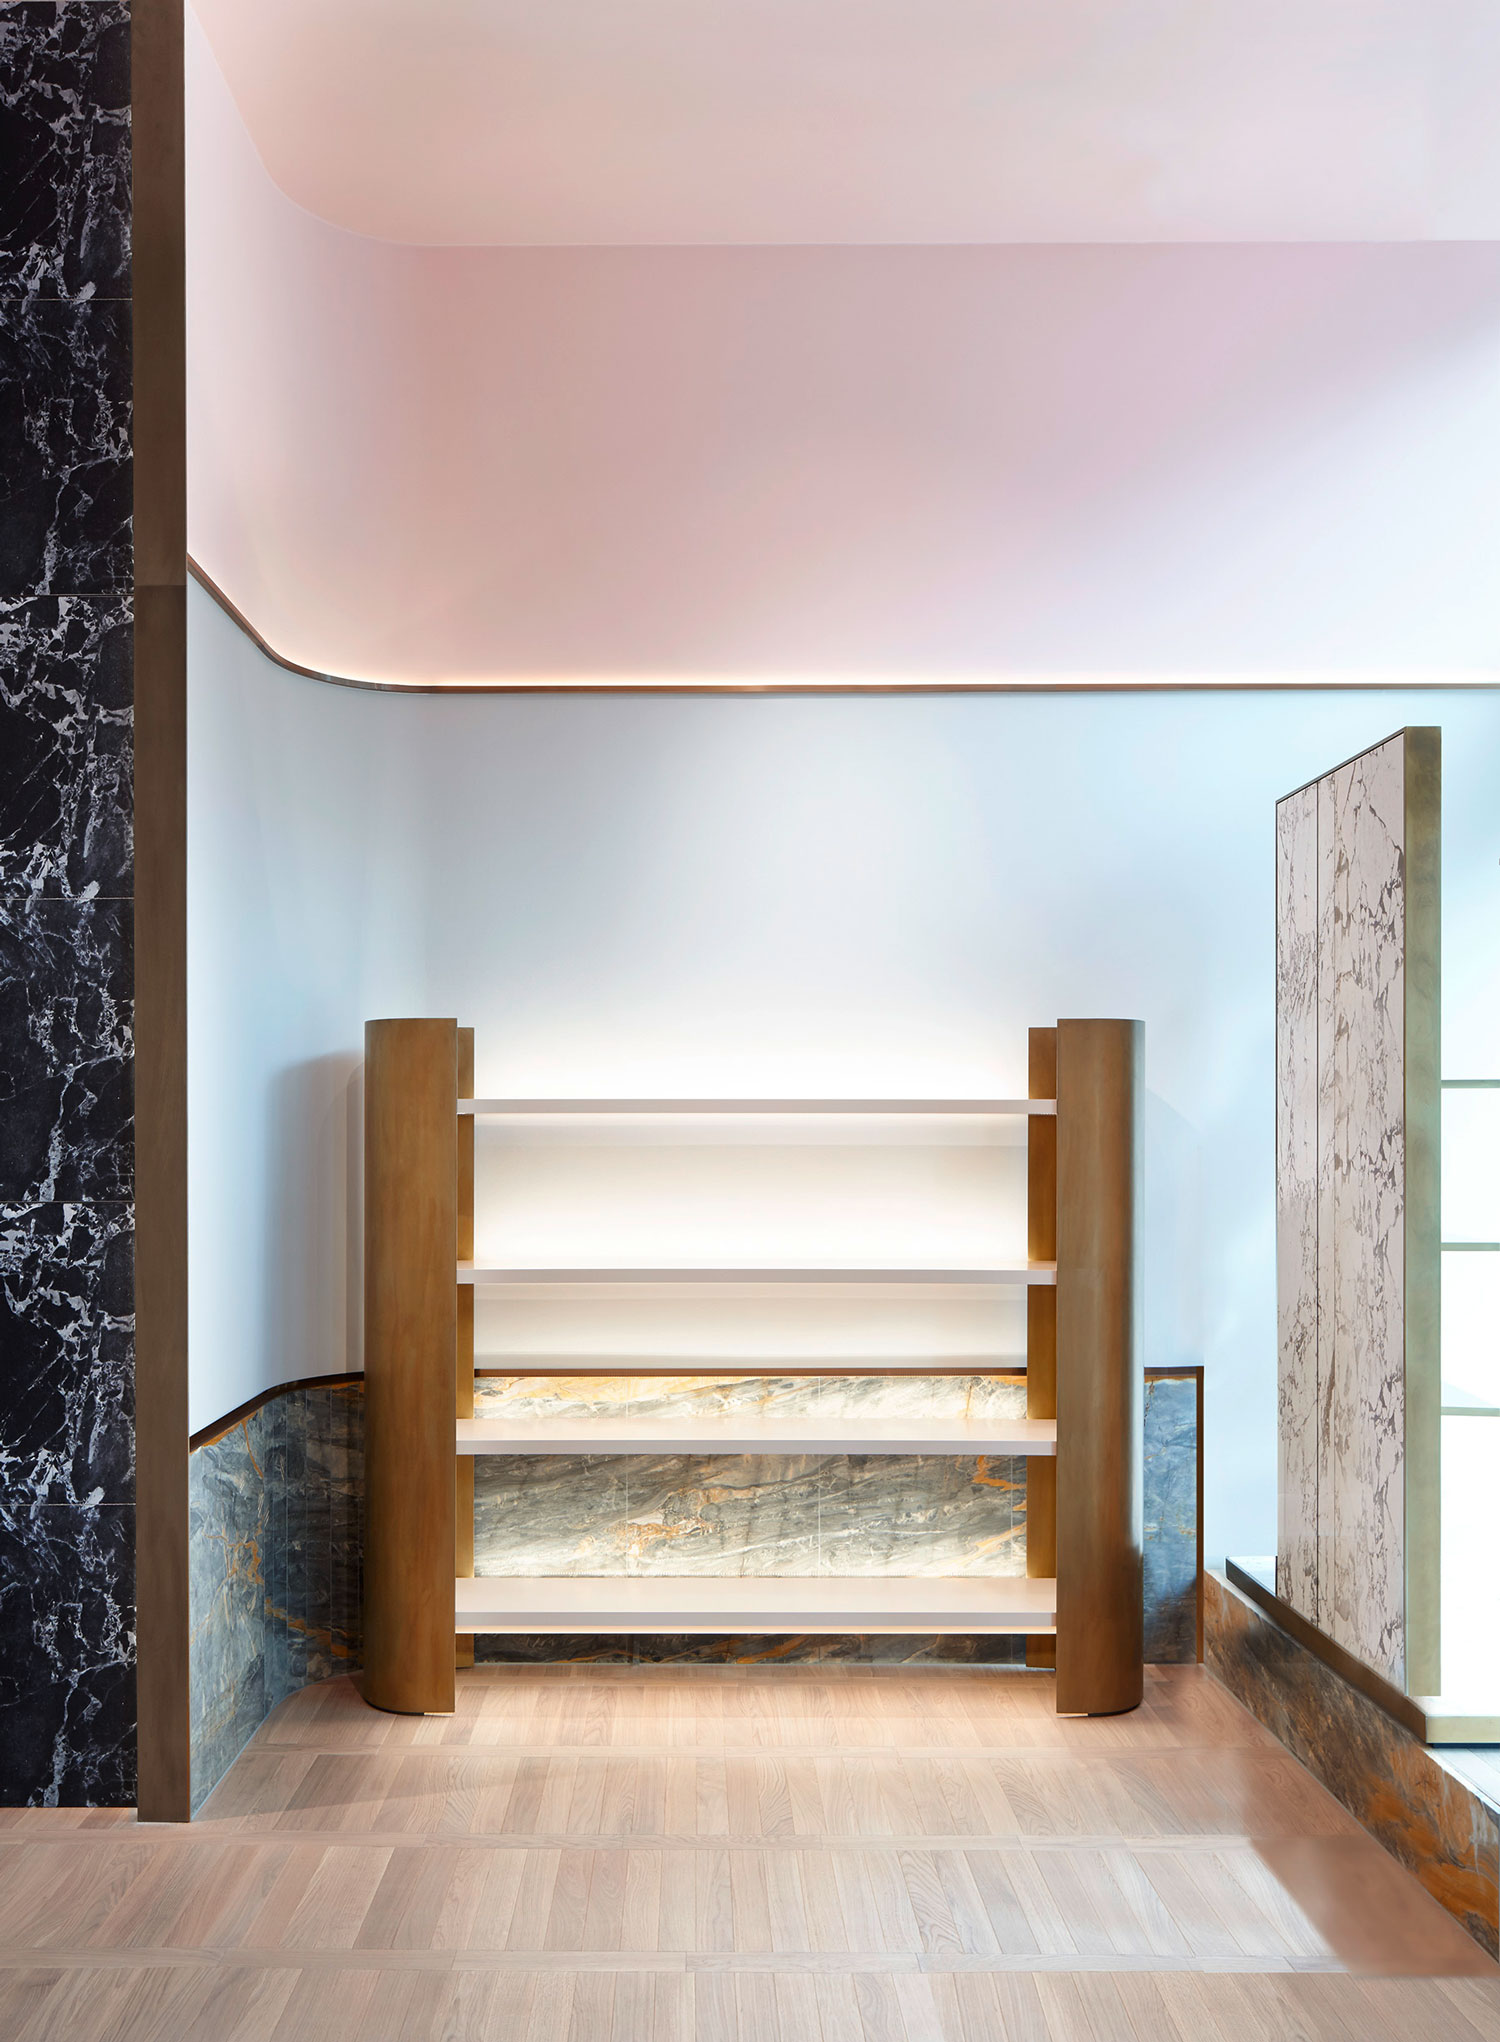 apropos concept store in hamburg by rodolphe parente benjamin liatoud yellowtrace bloglovin. Black Bedroom Furniture Sets. Home Design Ideas